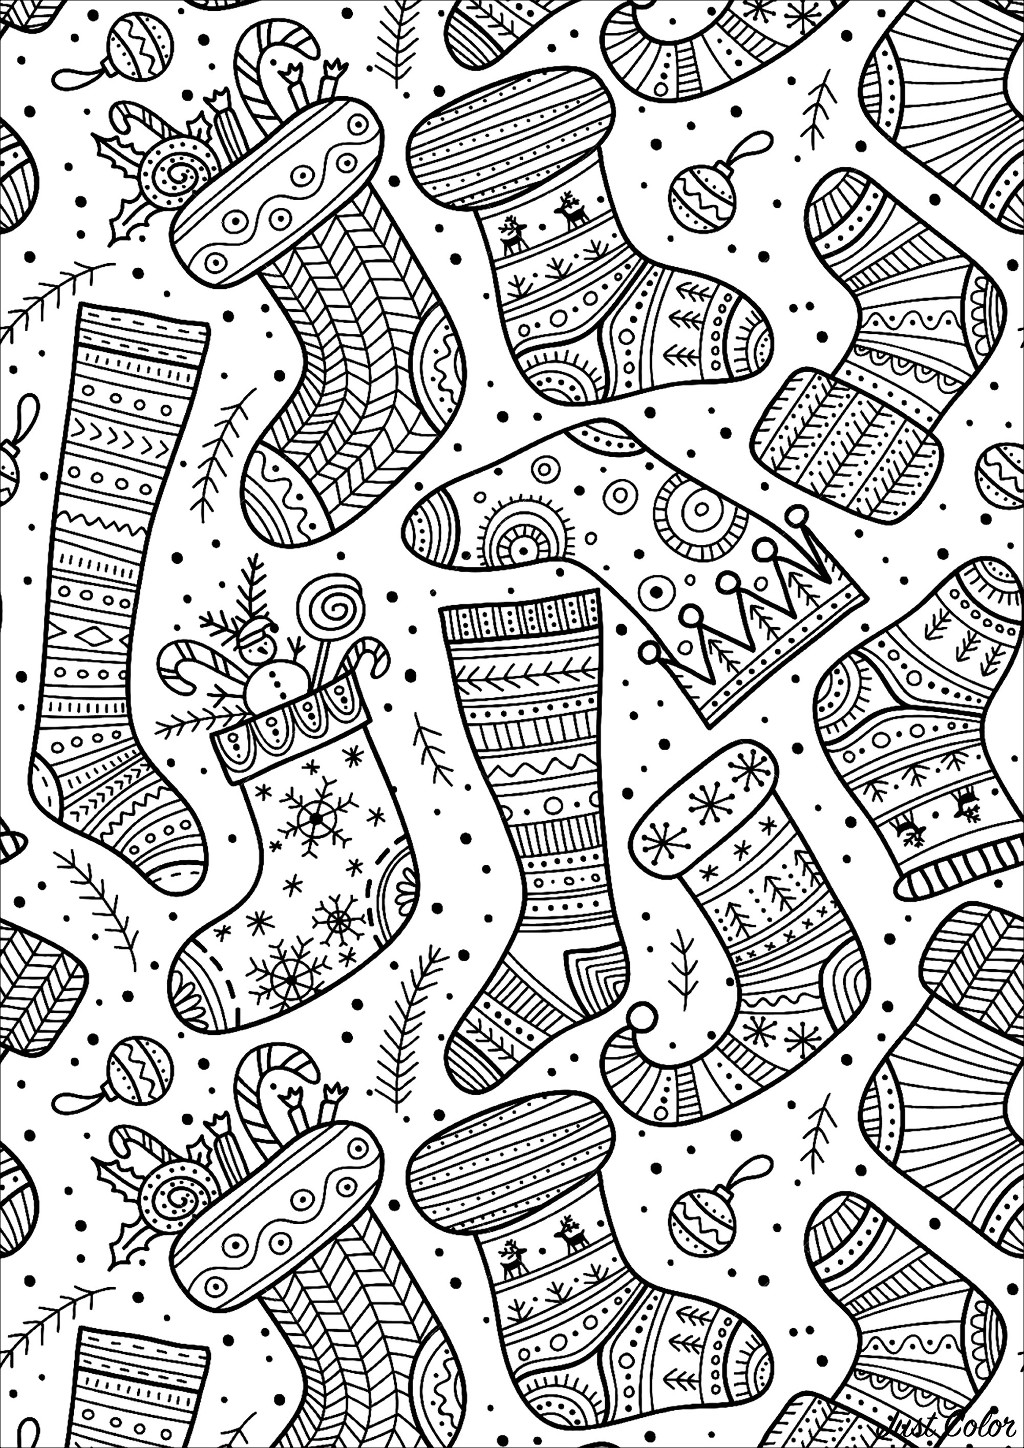 Cute Christmas socks with various and happy designs